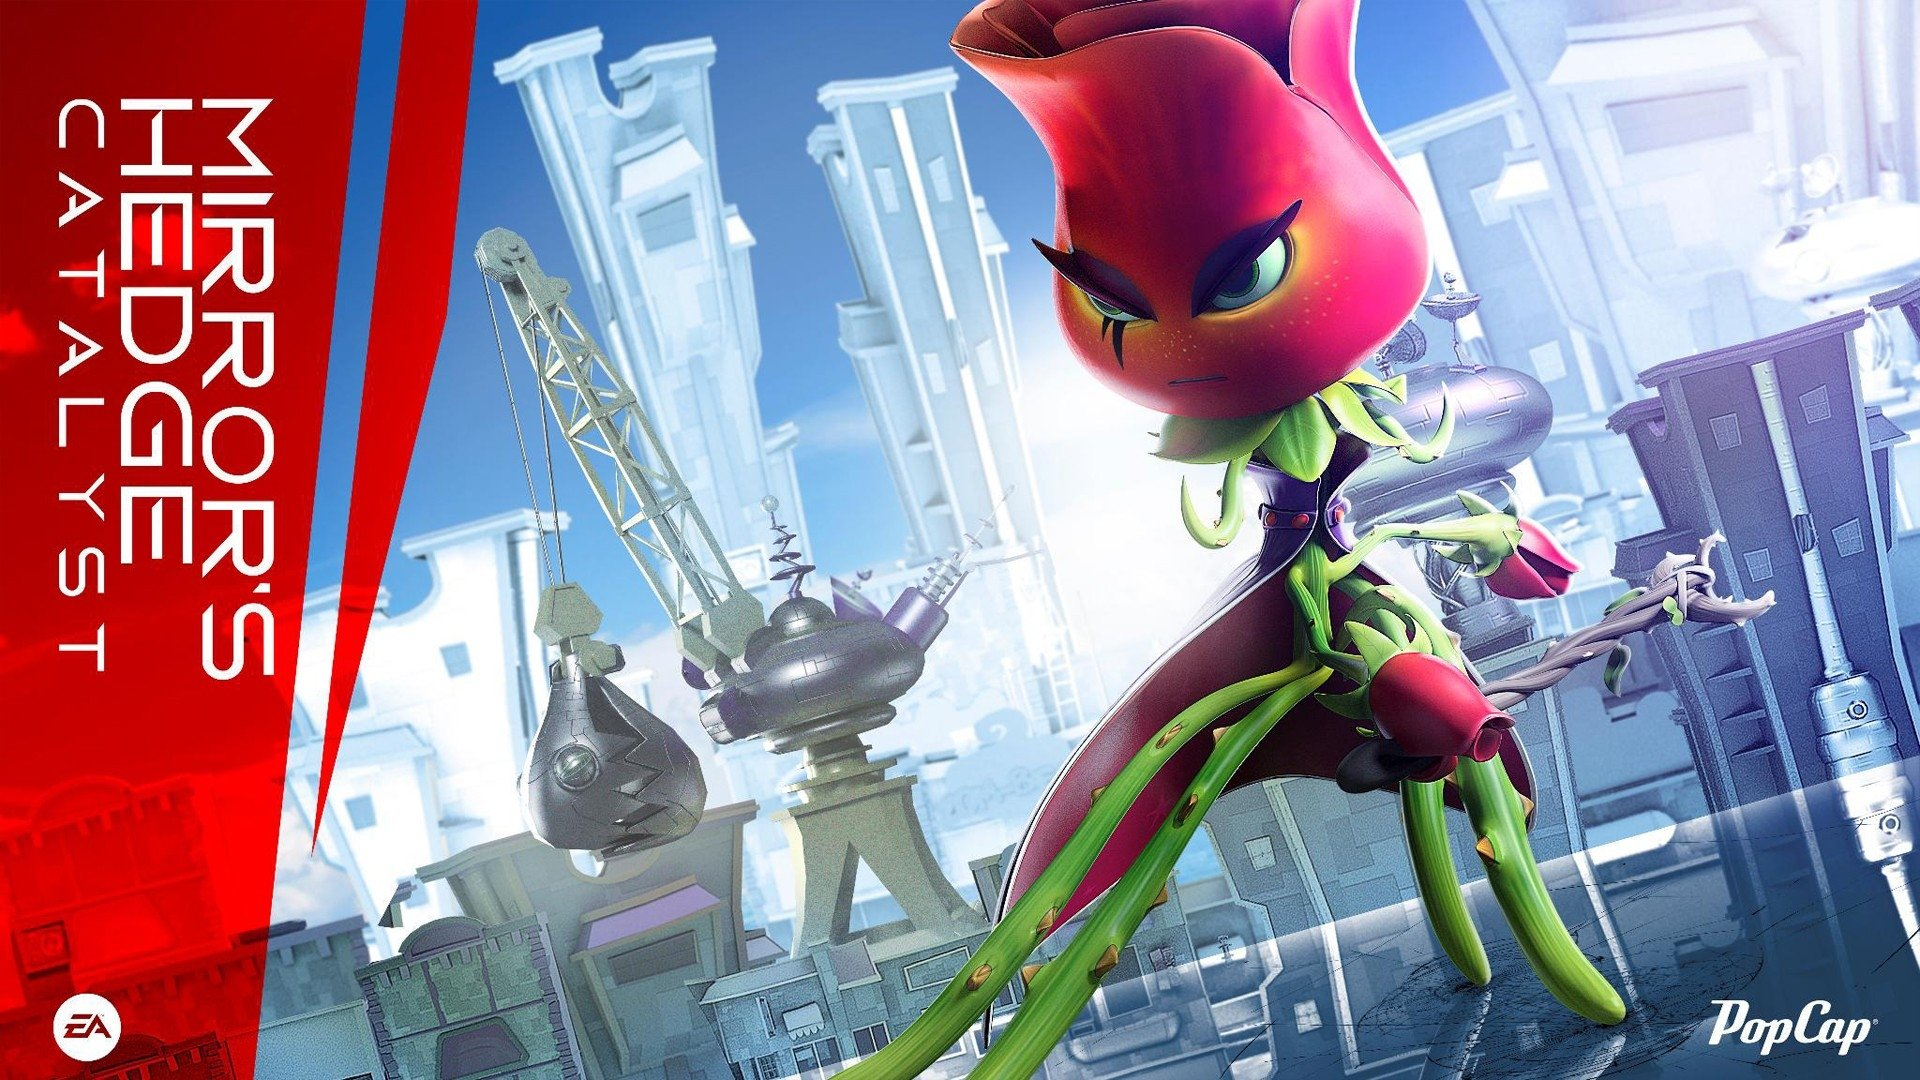 Plants vs Zombies Garden Warfare announced by EA